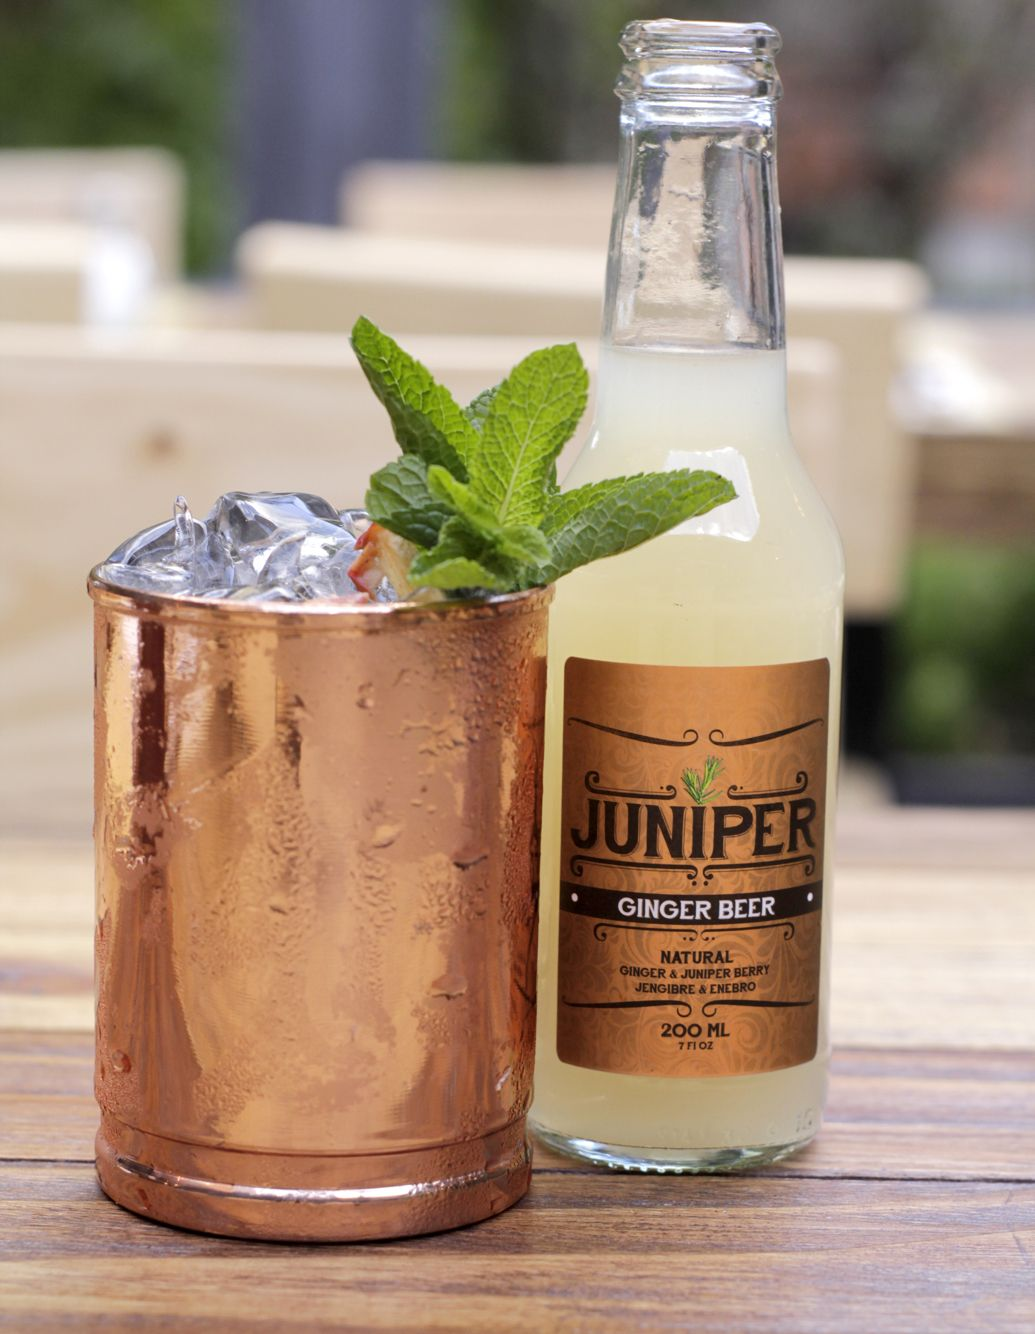 MOSCOW MULE  60 ml vodka  15 ml zumo de limón  180 ml Juniper ginger beer  Decorar hierbabuena y limón   #moscowmule